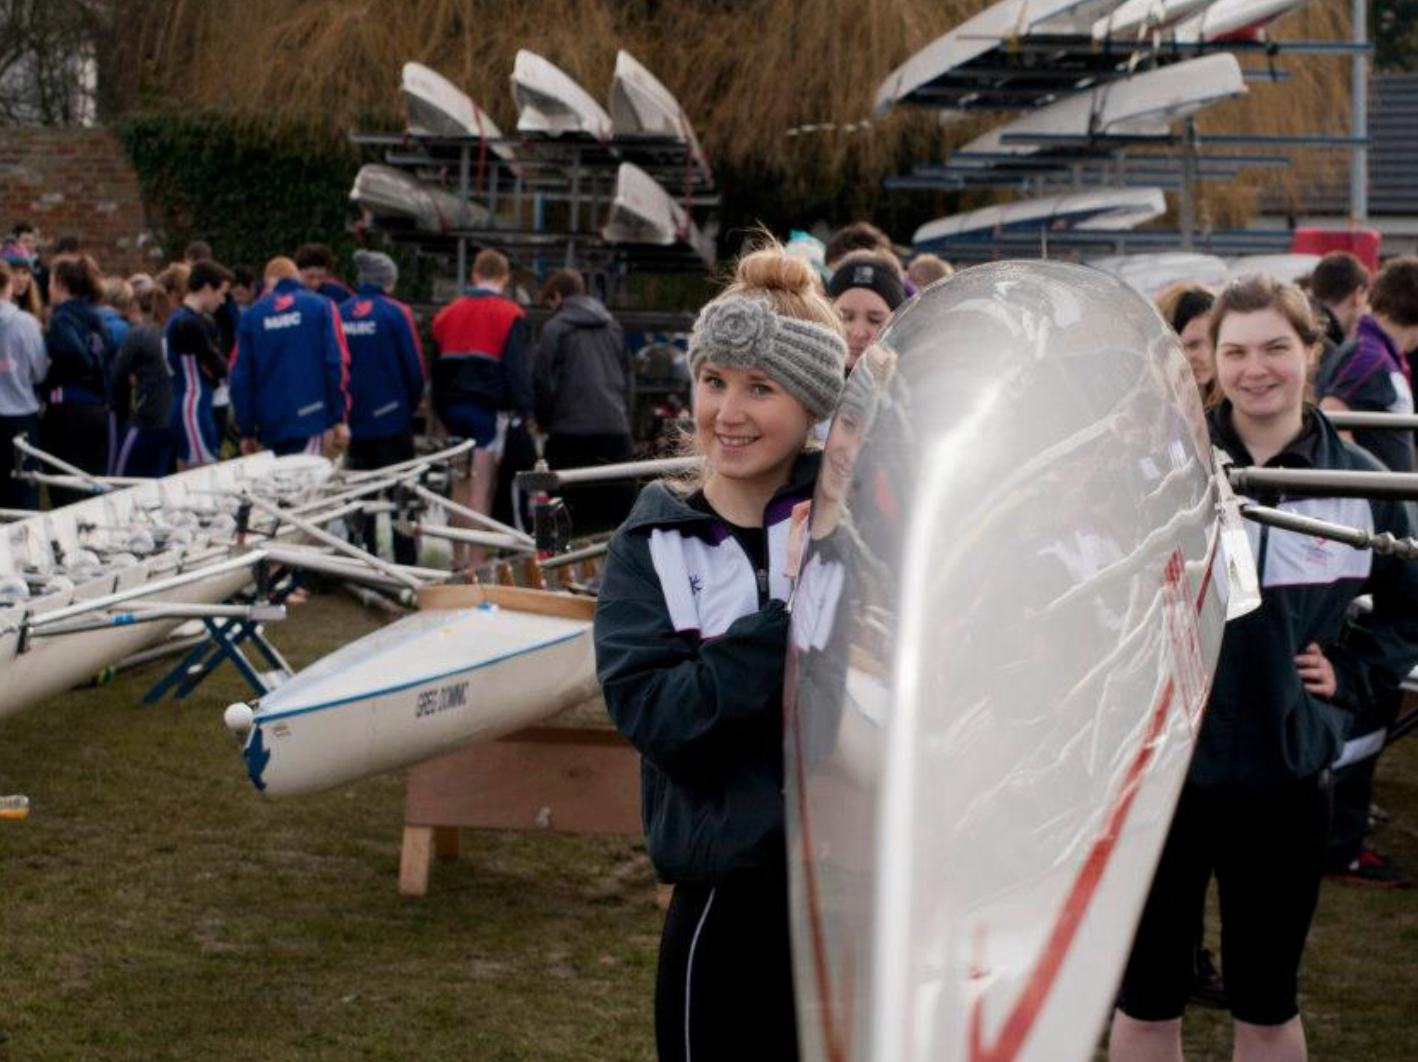 BUCS Loughborough rowing club